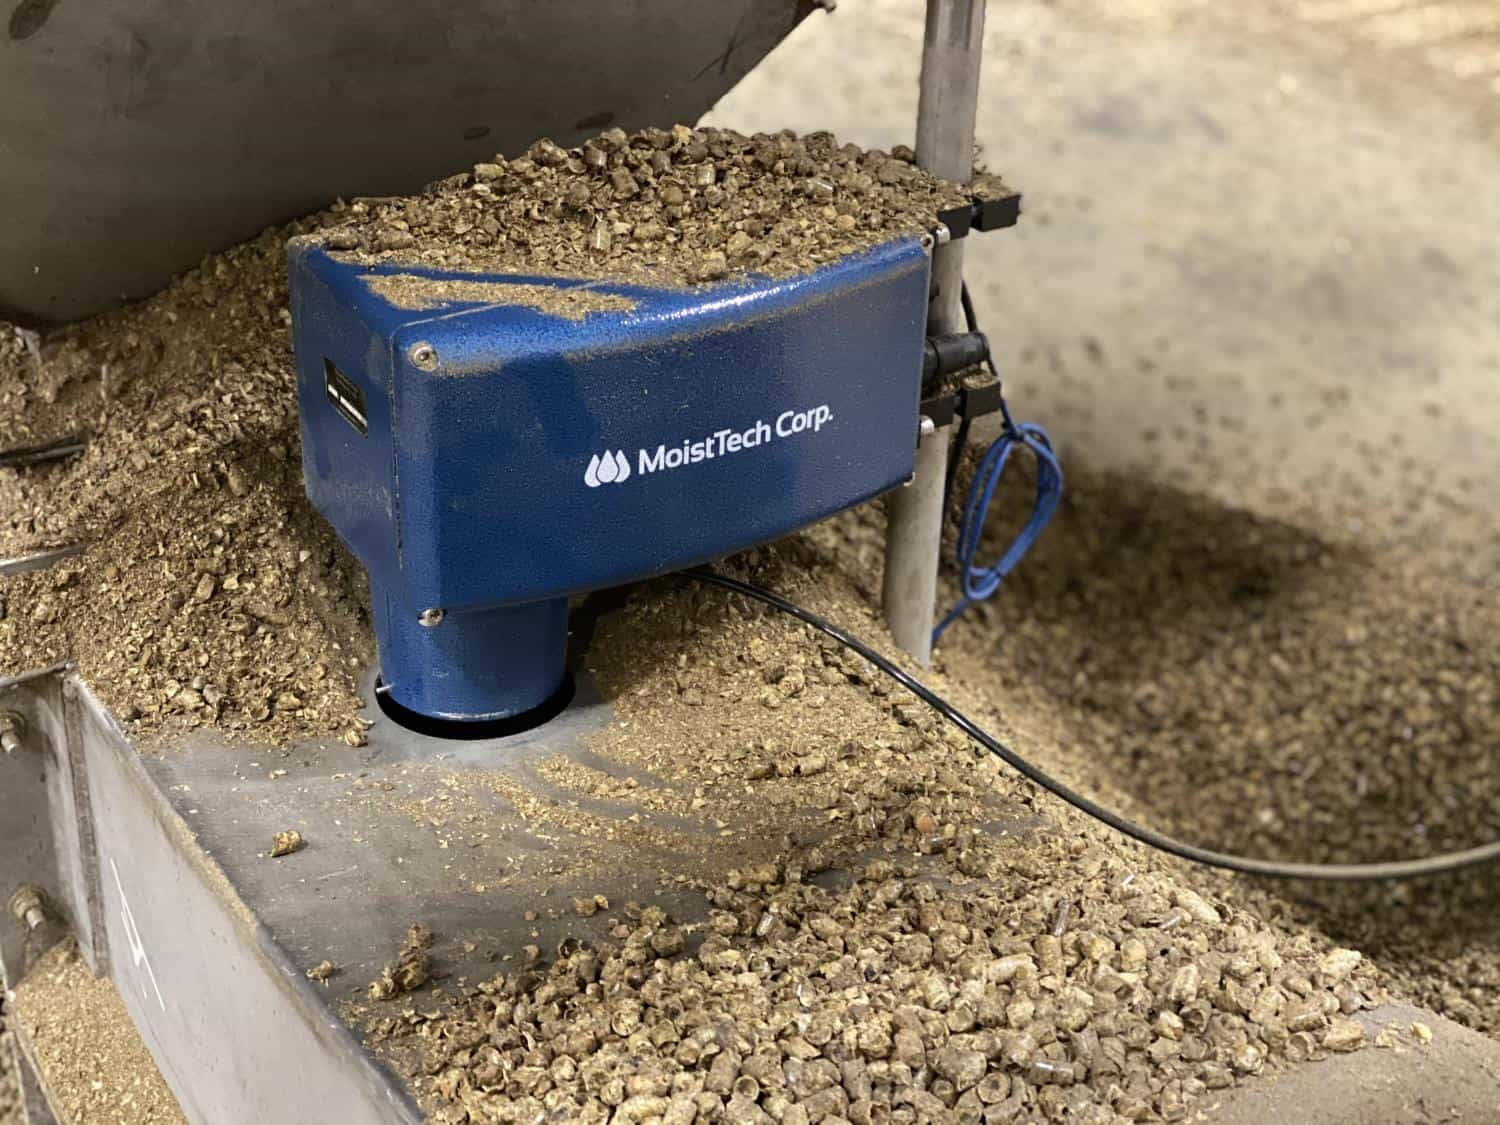 Looking to Cut Costs? Look to Moisture Control